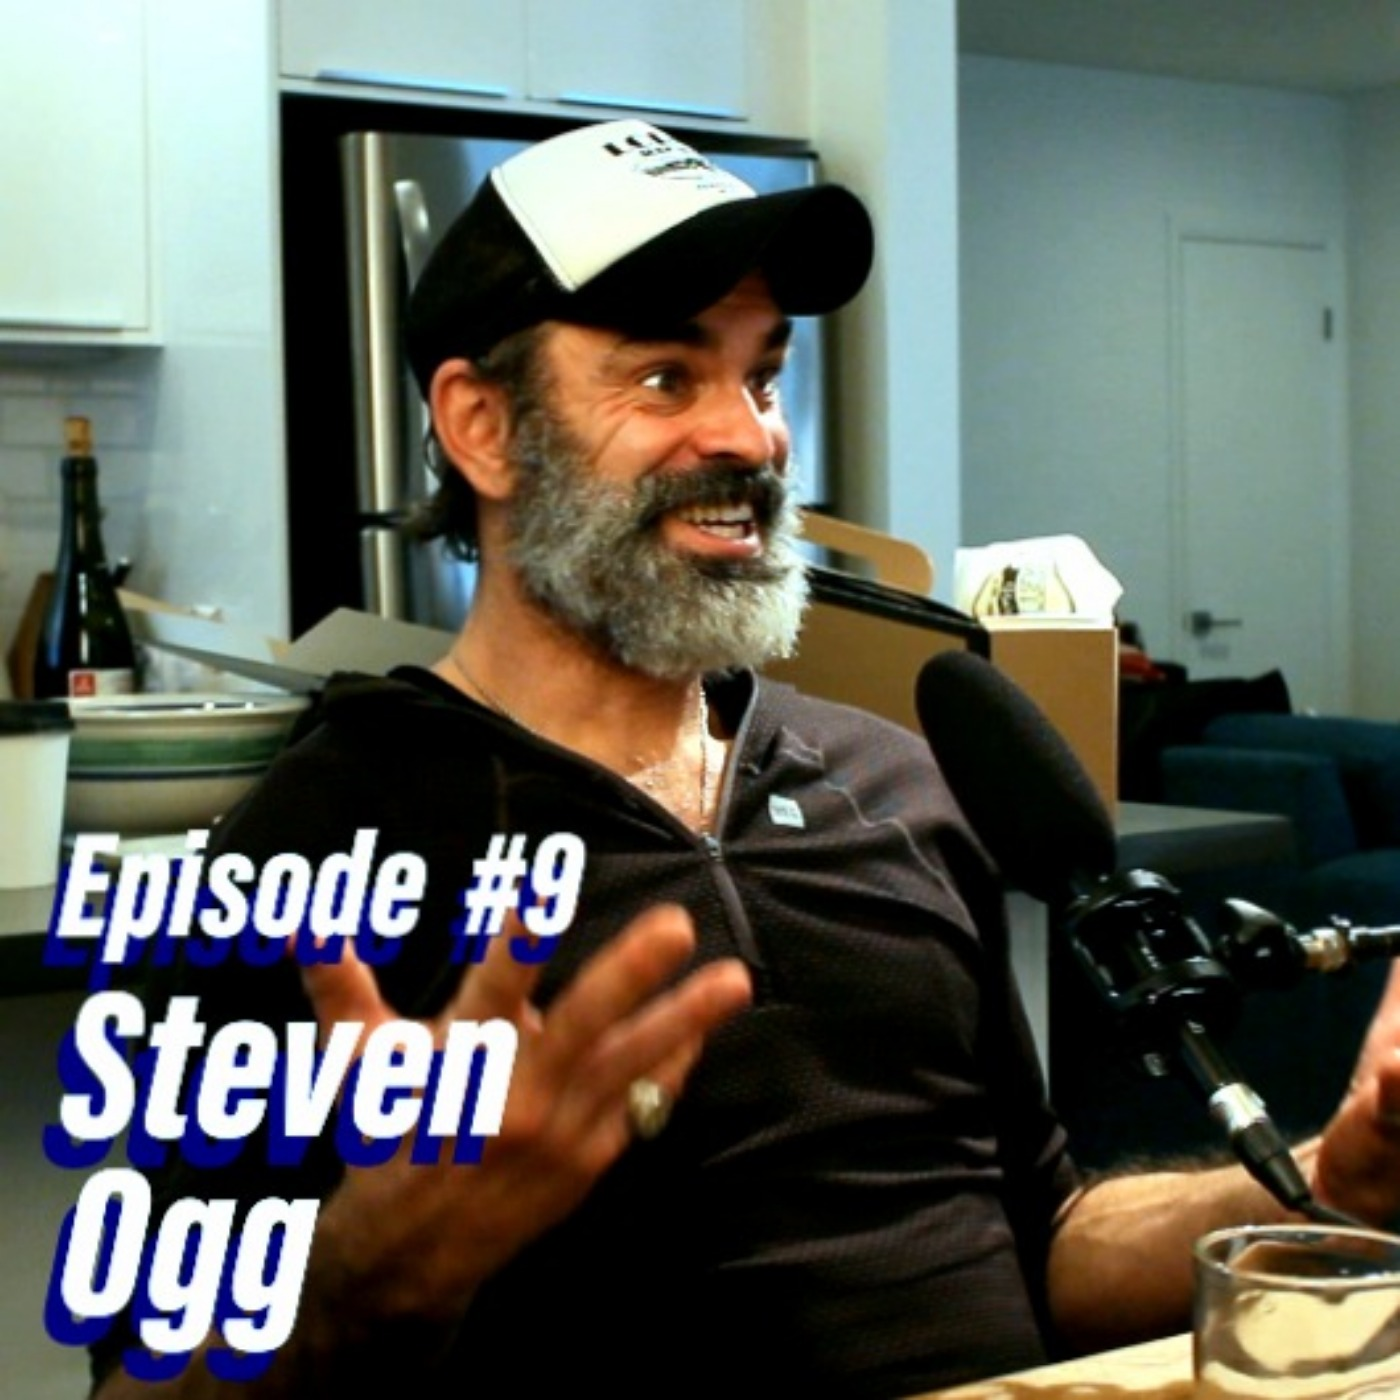 Episode #9 with Steven Ogg